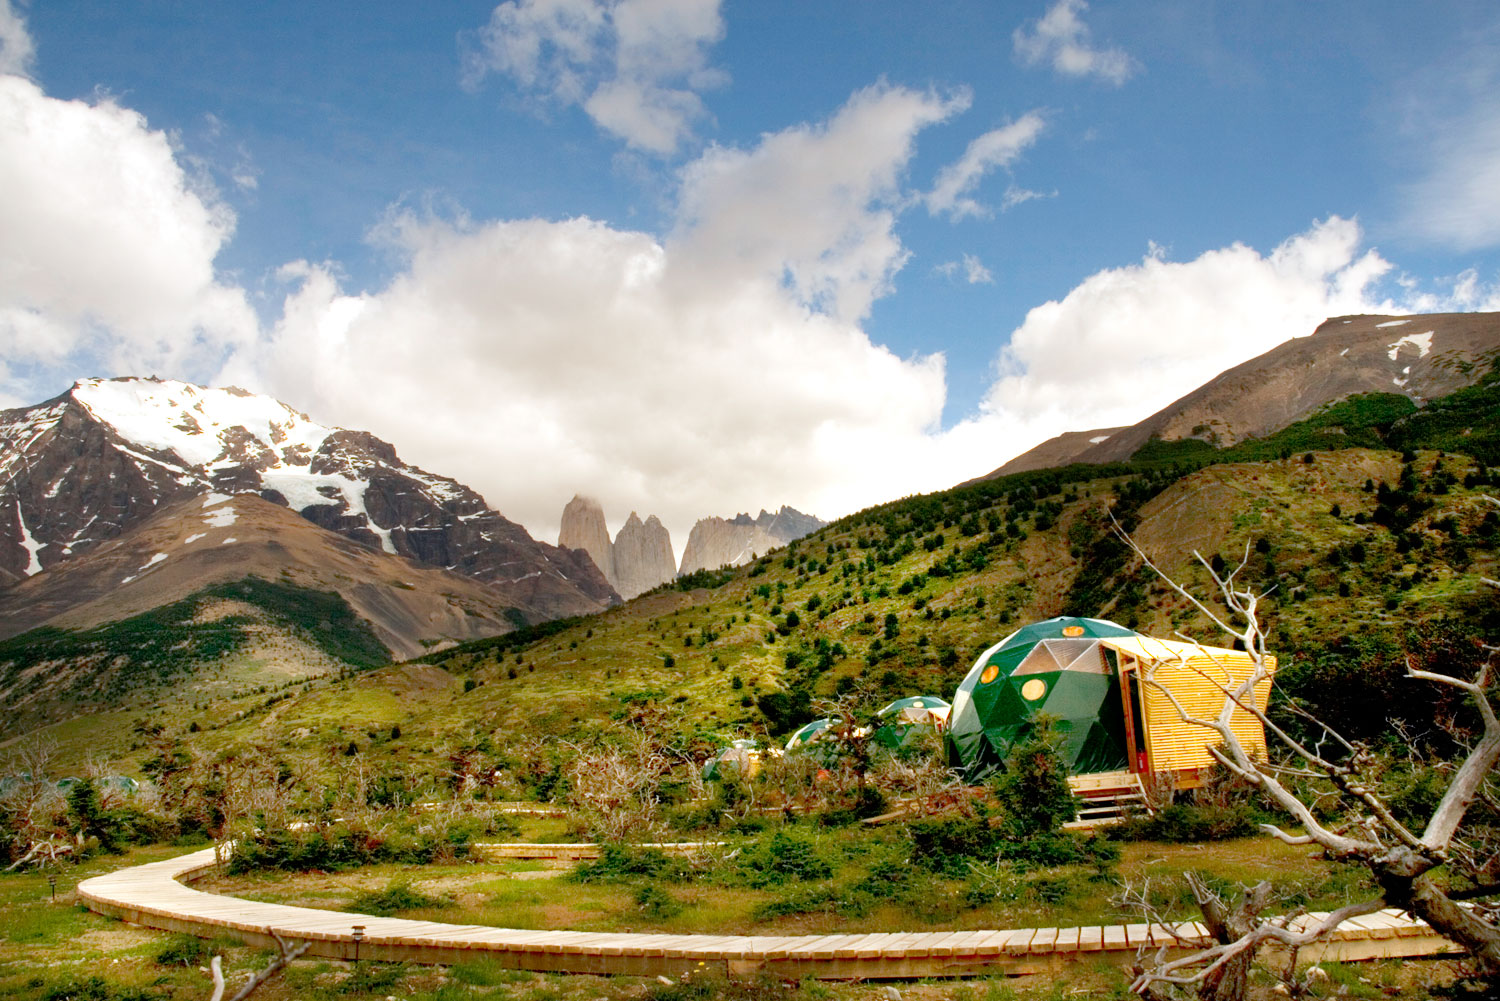 EcoCamp Patagonia in Torres del Paine National Park, Chile.